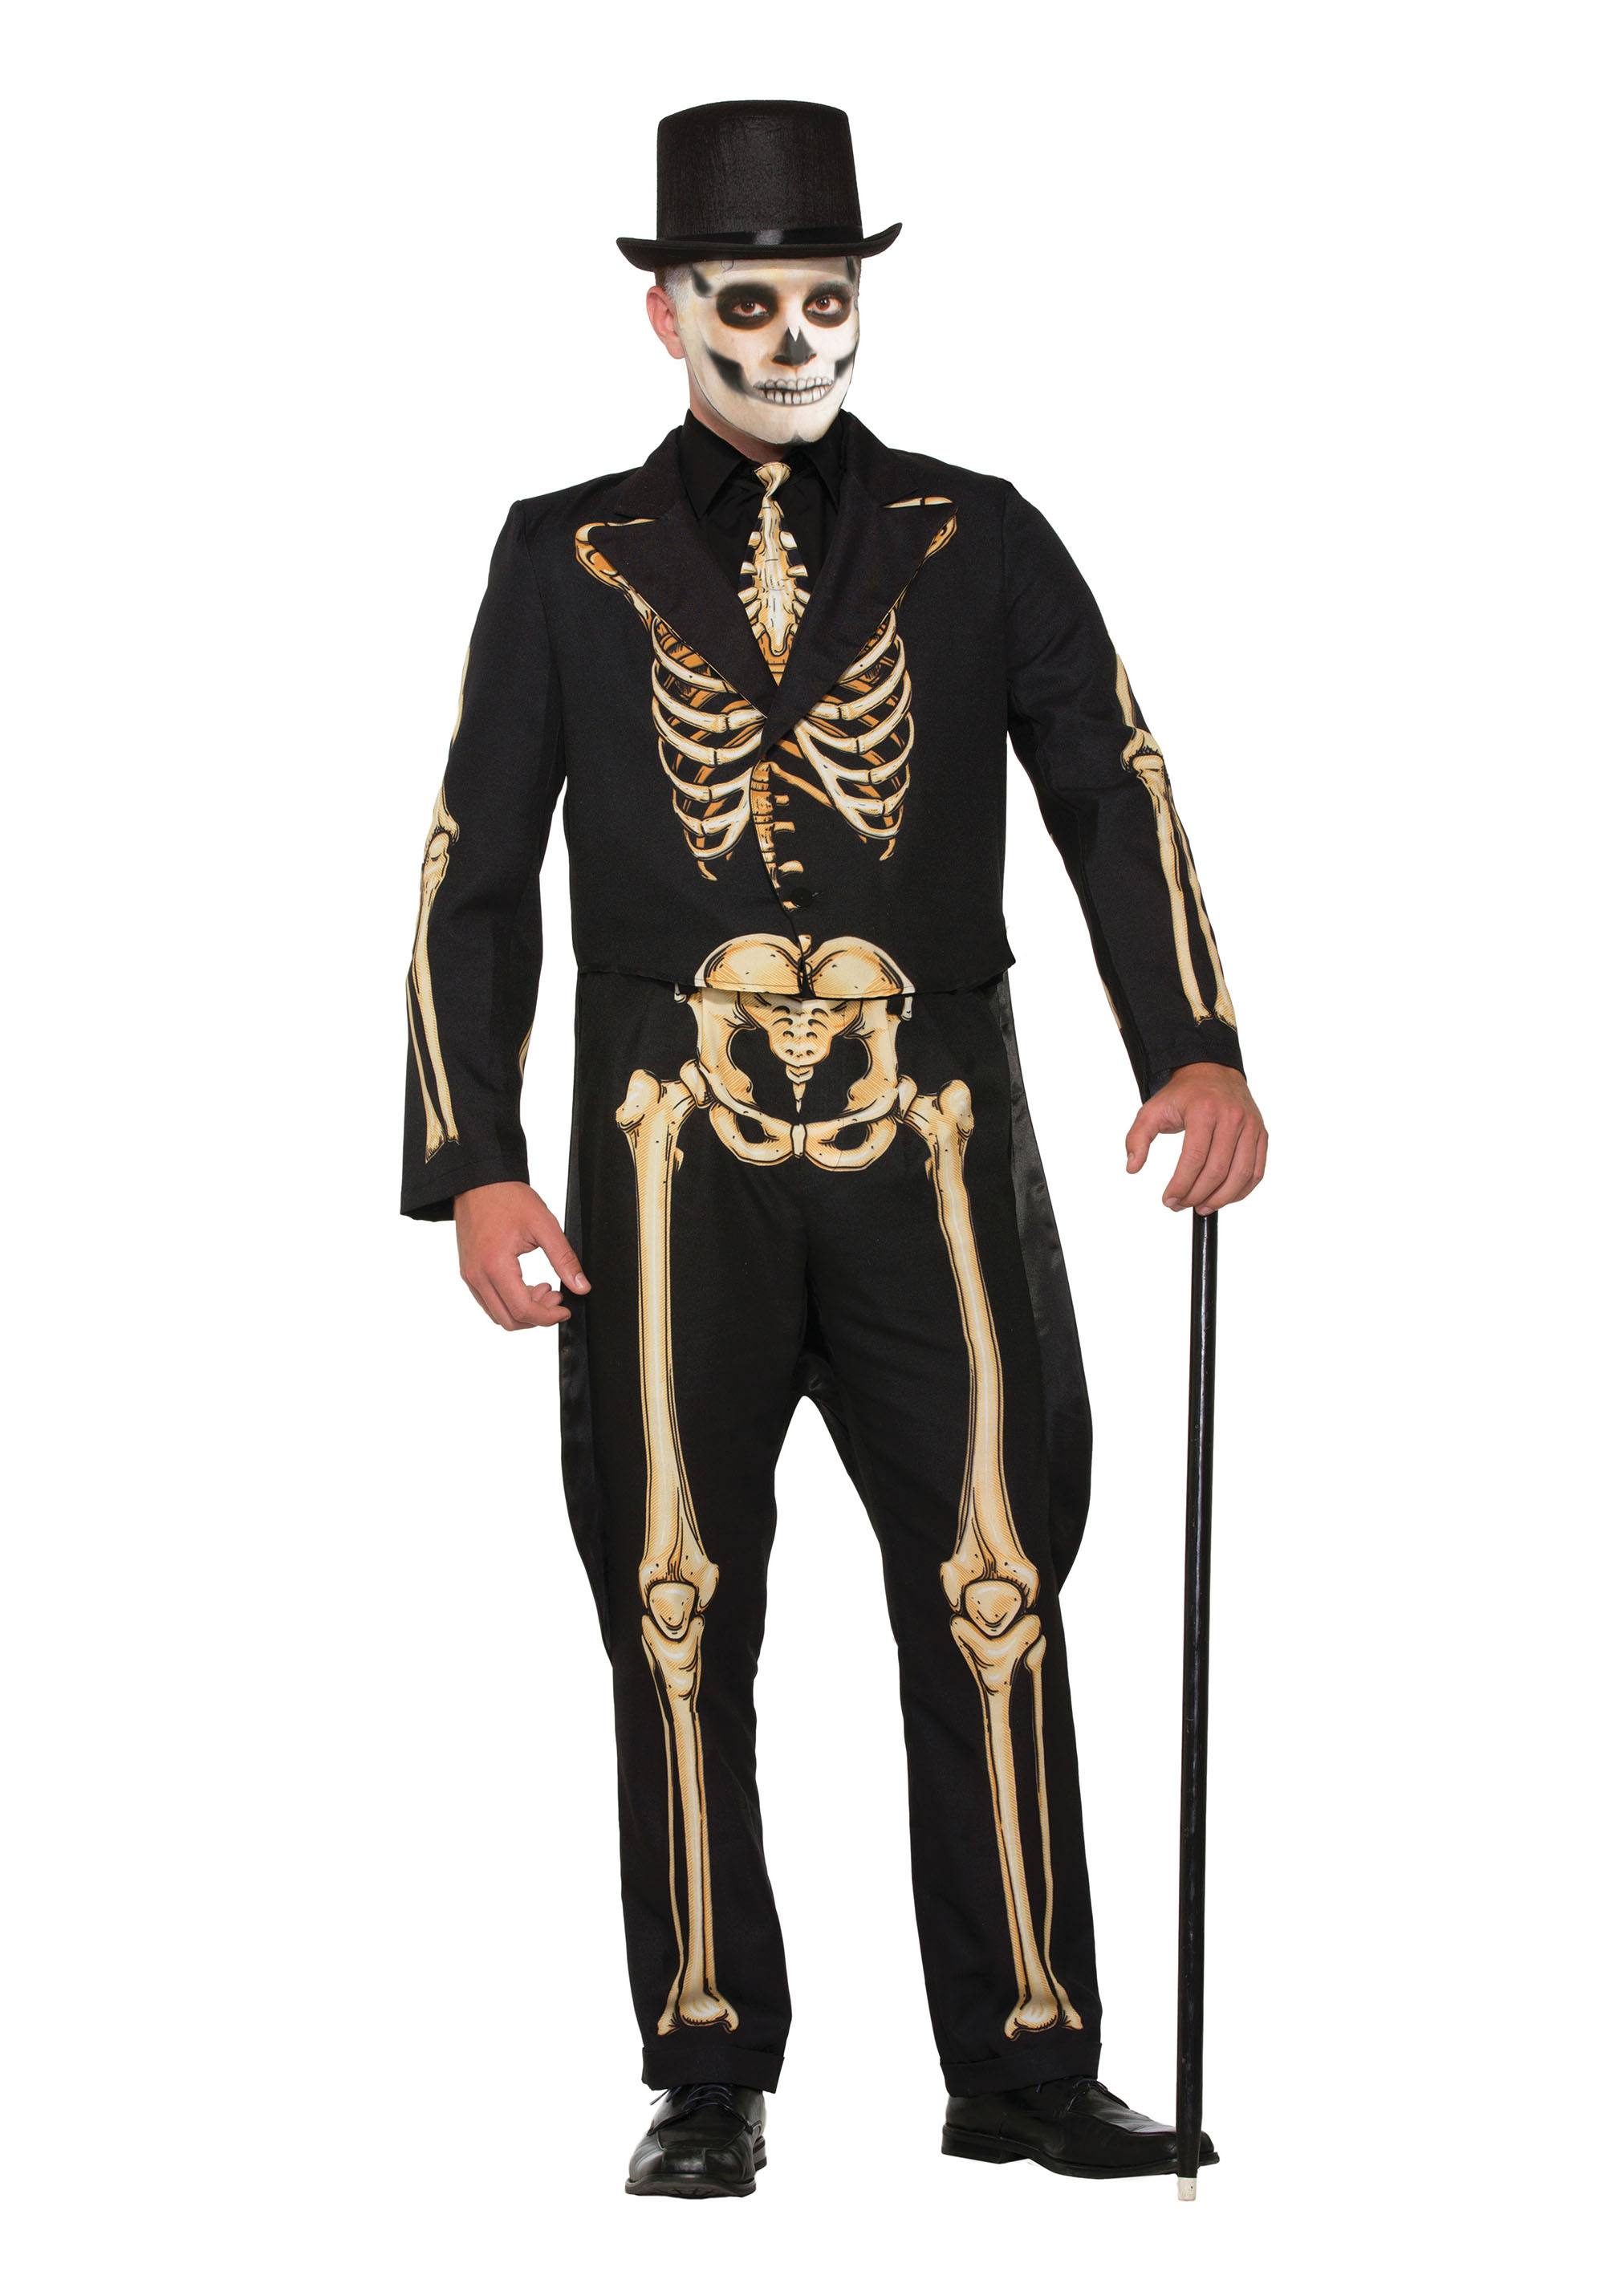 Skeleton Formal Costume Halloween Fancy Dress Costume Male Mens Adult One Size